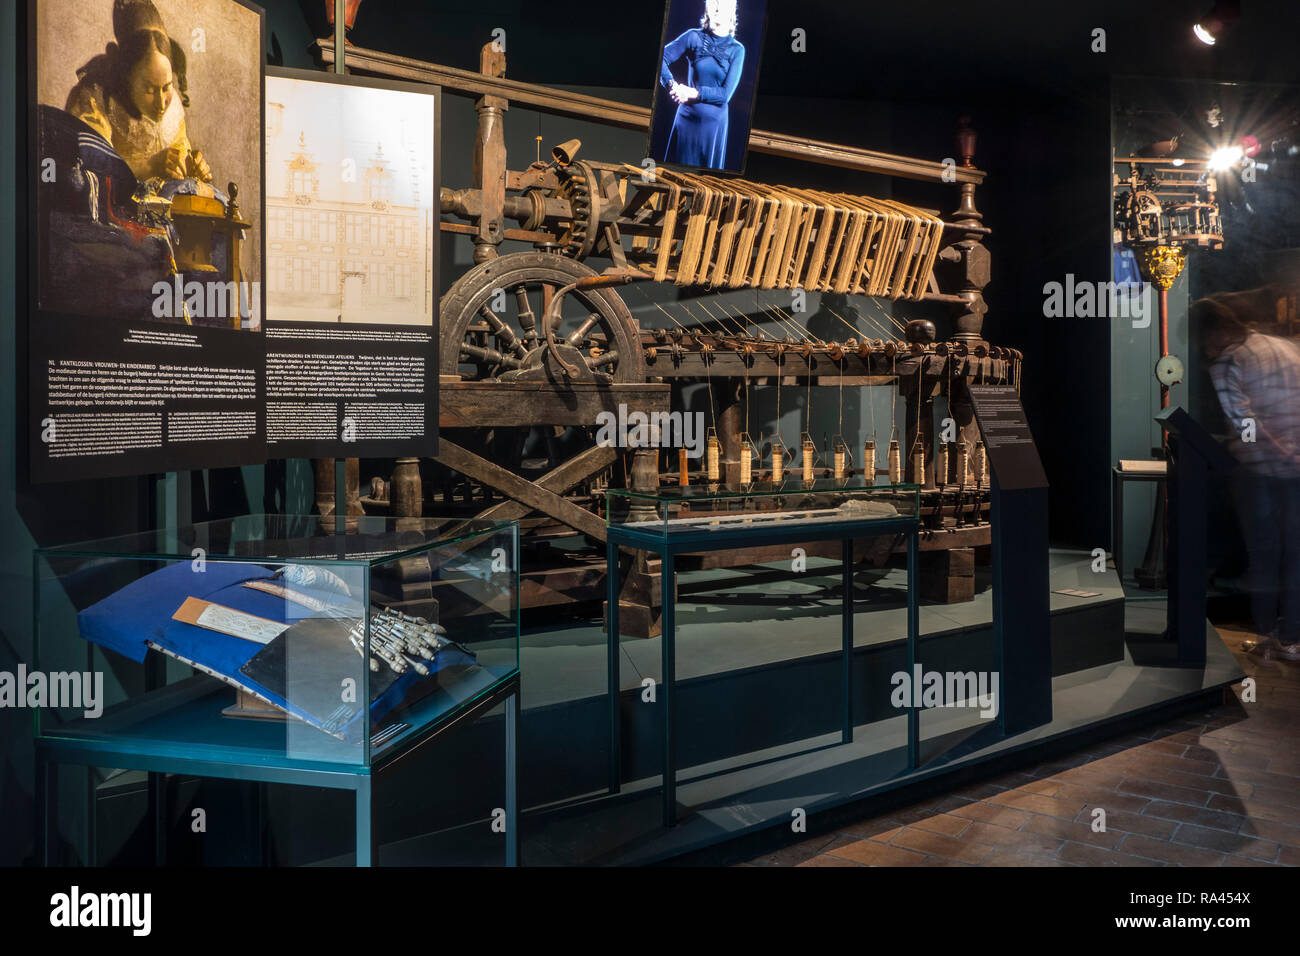 Old twine mill / wooden yarn twisting machine from 1789 at MIAT / Industriemuseum, industrial archaeology museum, Ghent, Belgium - Stock Image